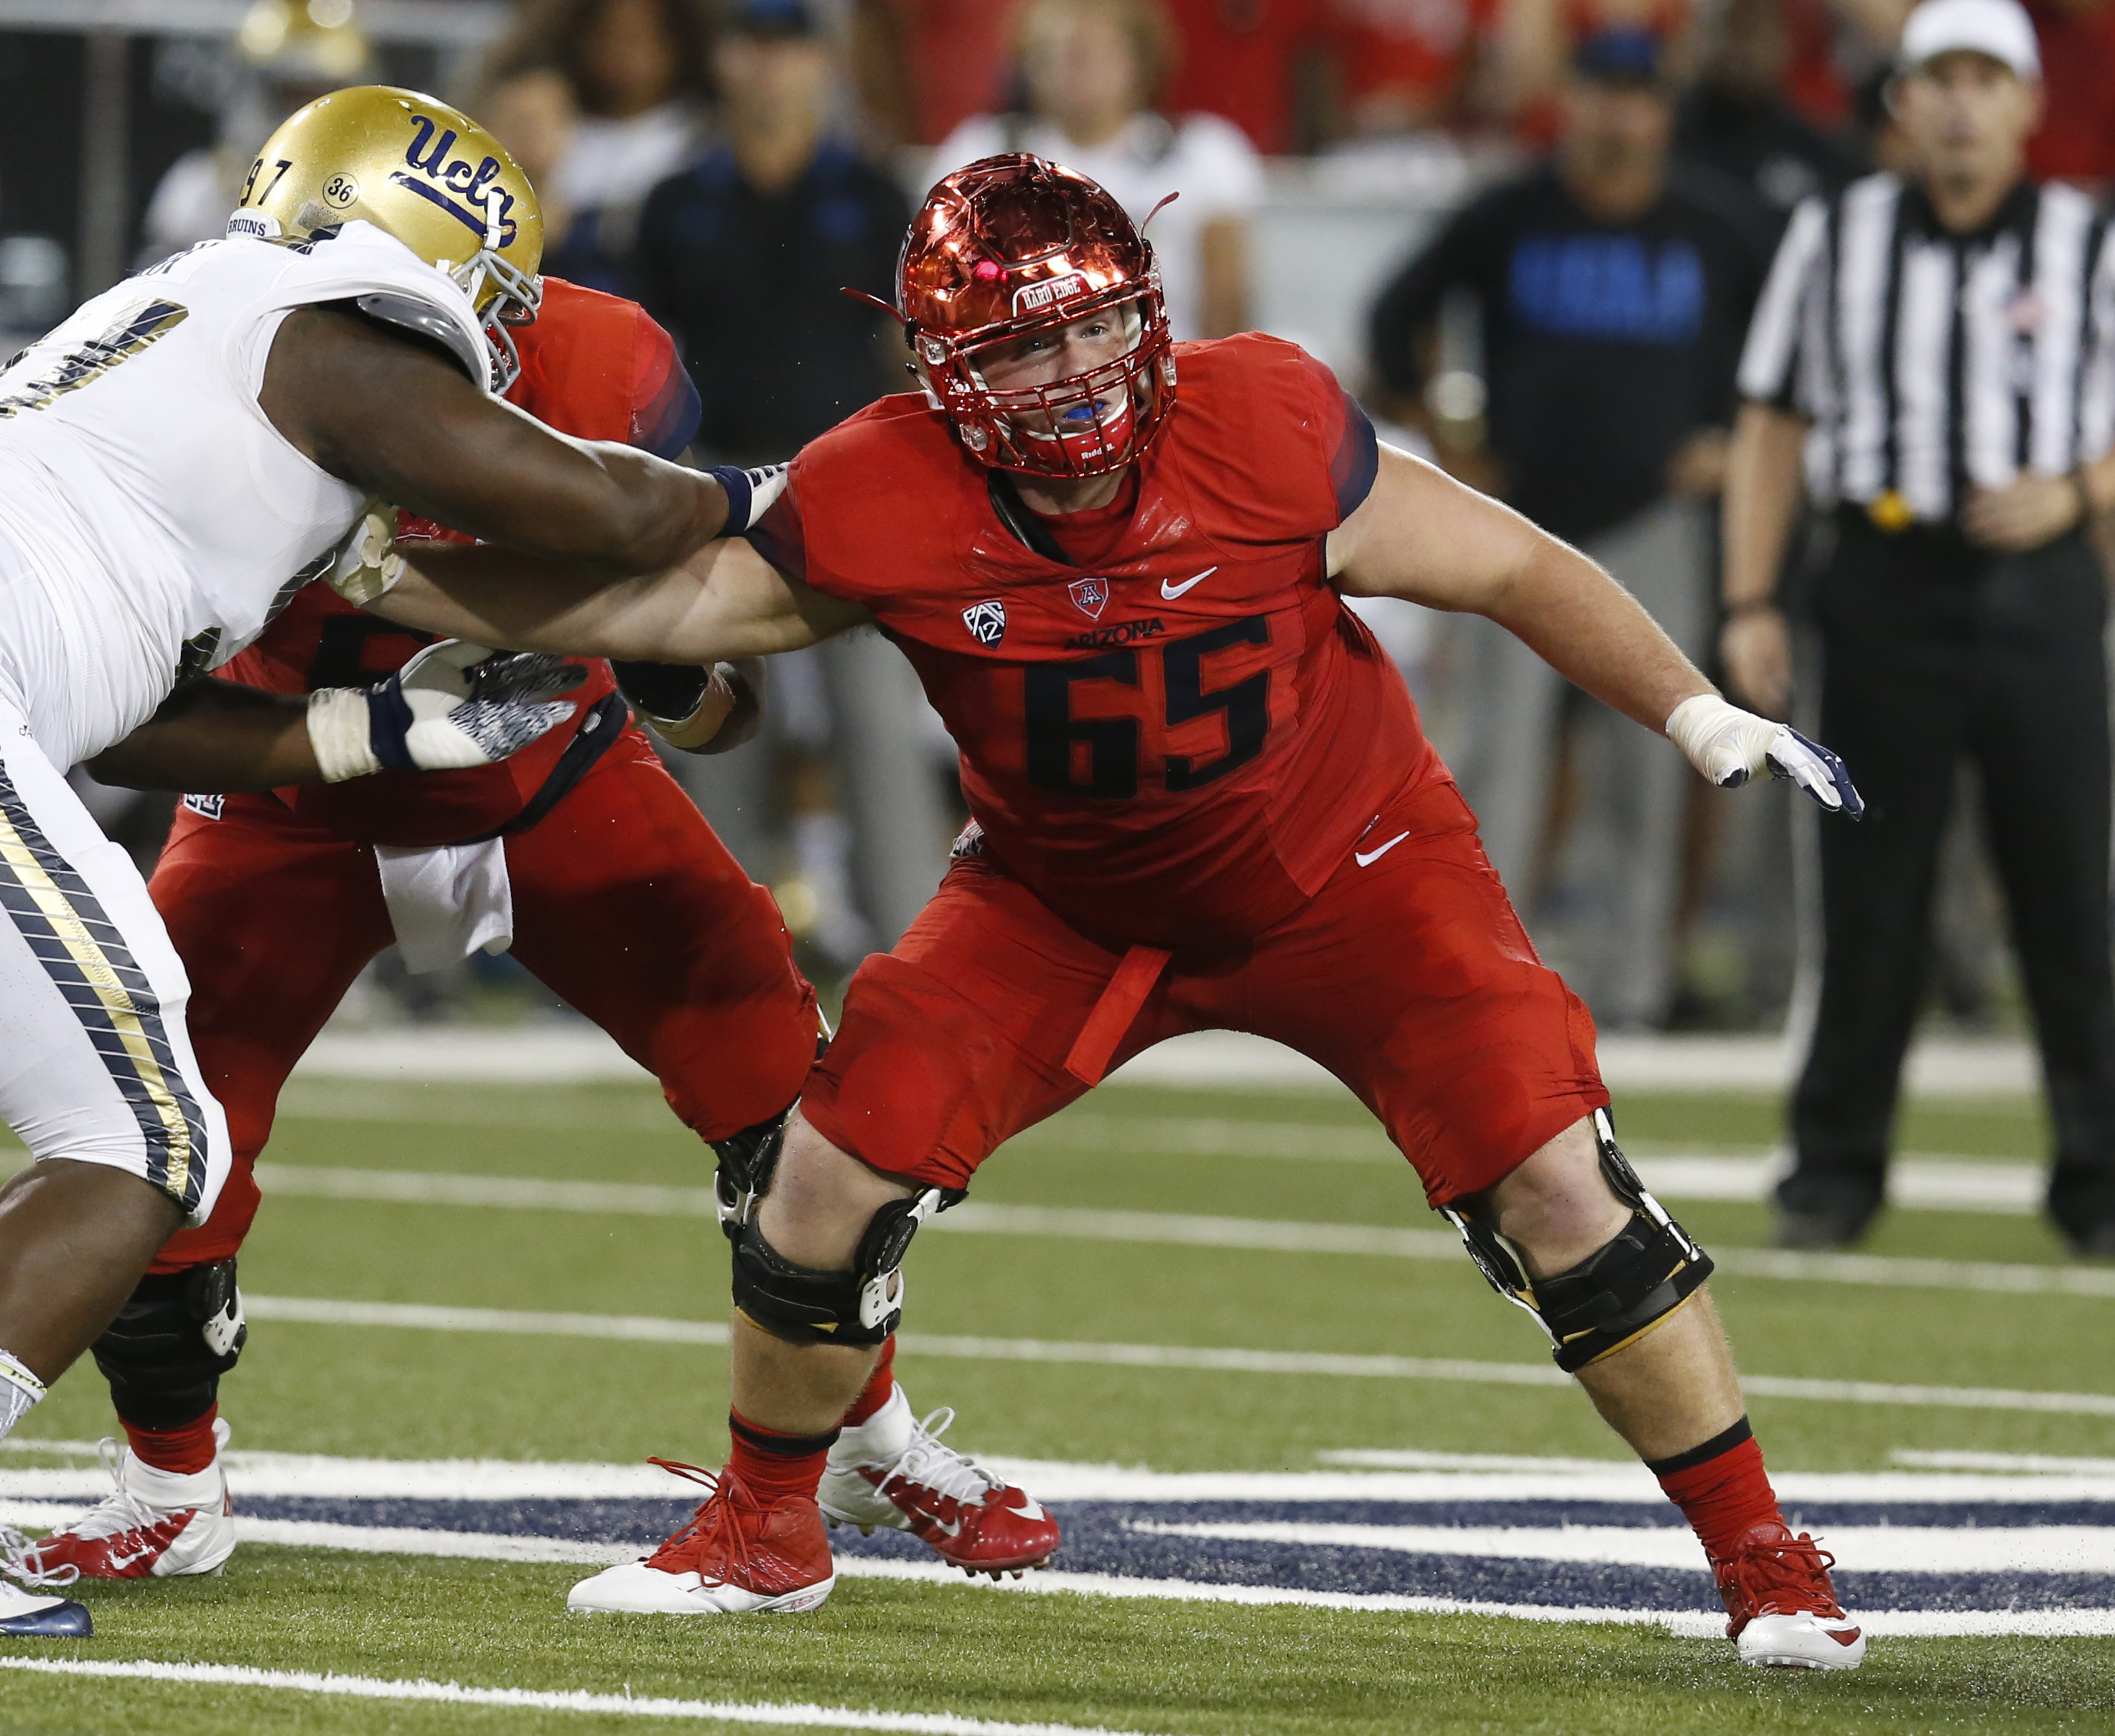 FILE - In this Sept. 26, 2015, file photo, Arizona offensive lineman Zach Hemmila (65) blocks a UCLA player during the first half of an NCAA college football game in Tucson, Ariz. Hemmila, a senior offensive lineman, died in his sleep, Arizona athletic di